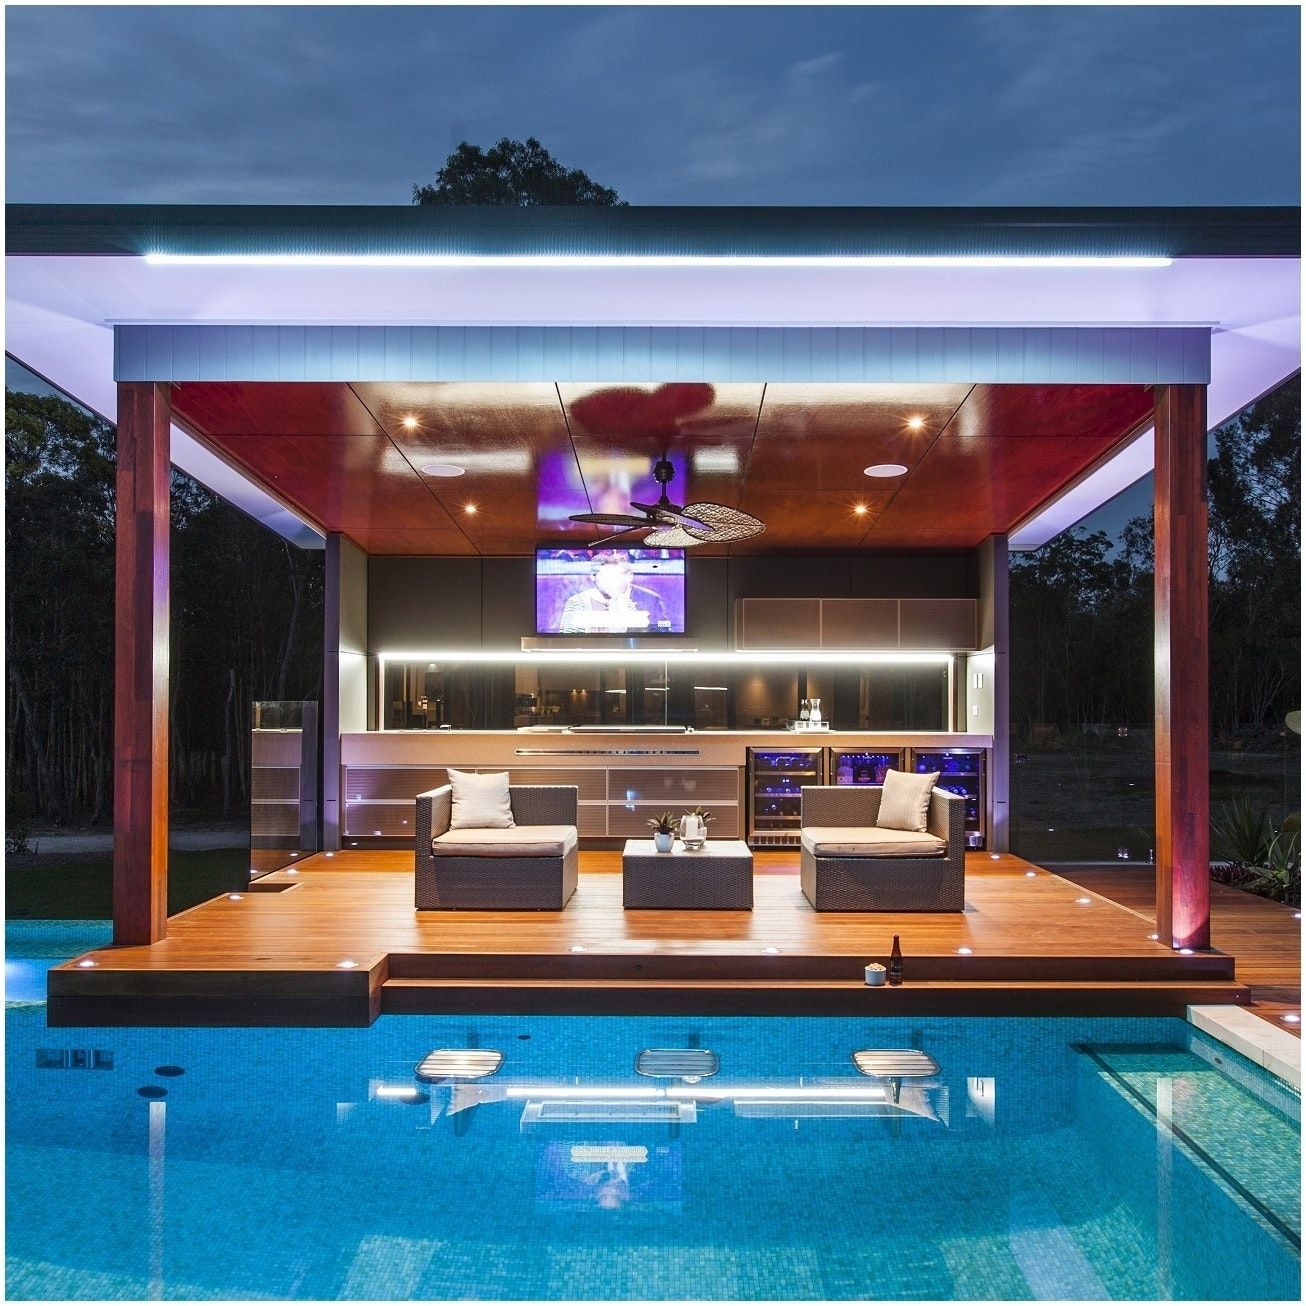 Backyards Awesome Backyard Designs With Pool And Outdoor Kitchen With Regard To Outdoor Kitchen With Pool Awesome Home Outdoor Kitchen With Pool Extravagant P Modern Outdoor Kitchen Outdoor Remodel Outdoor